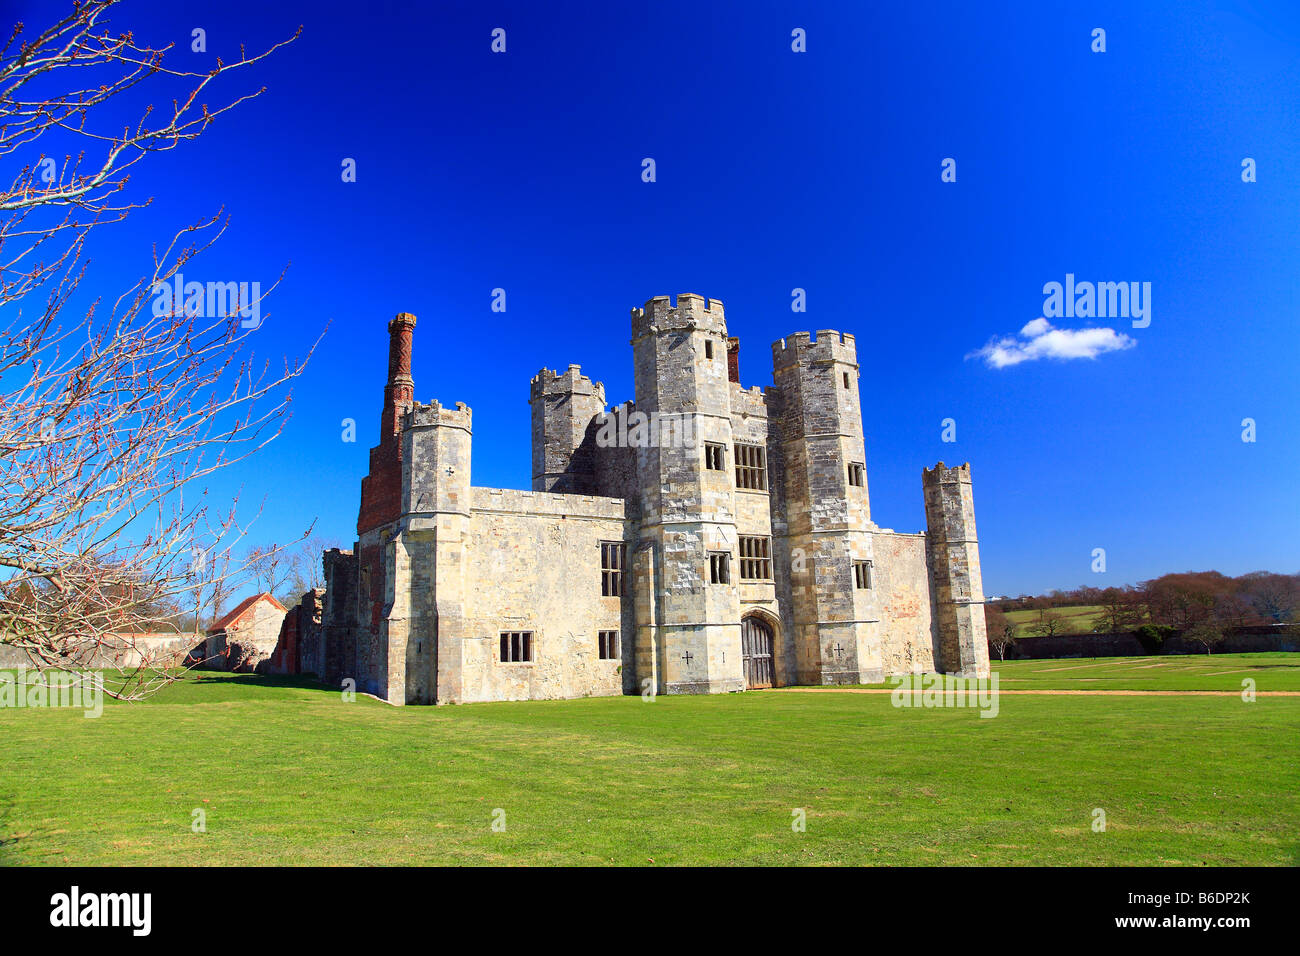 Titchfield Abbey 13th century in Spring. - Stock Image